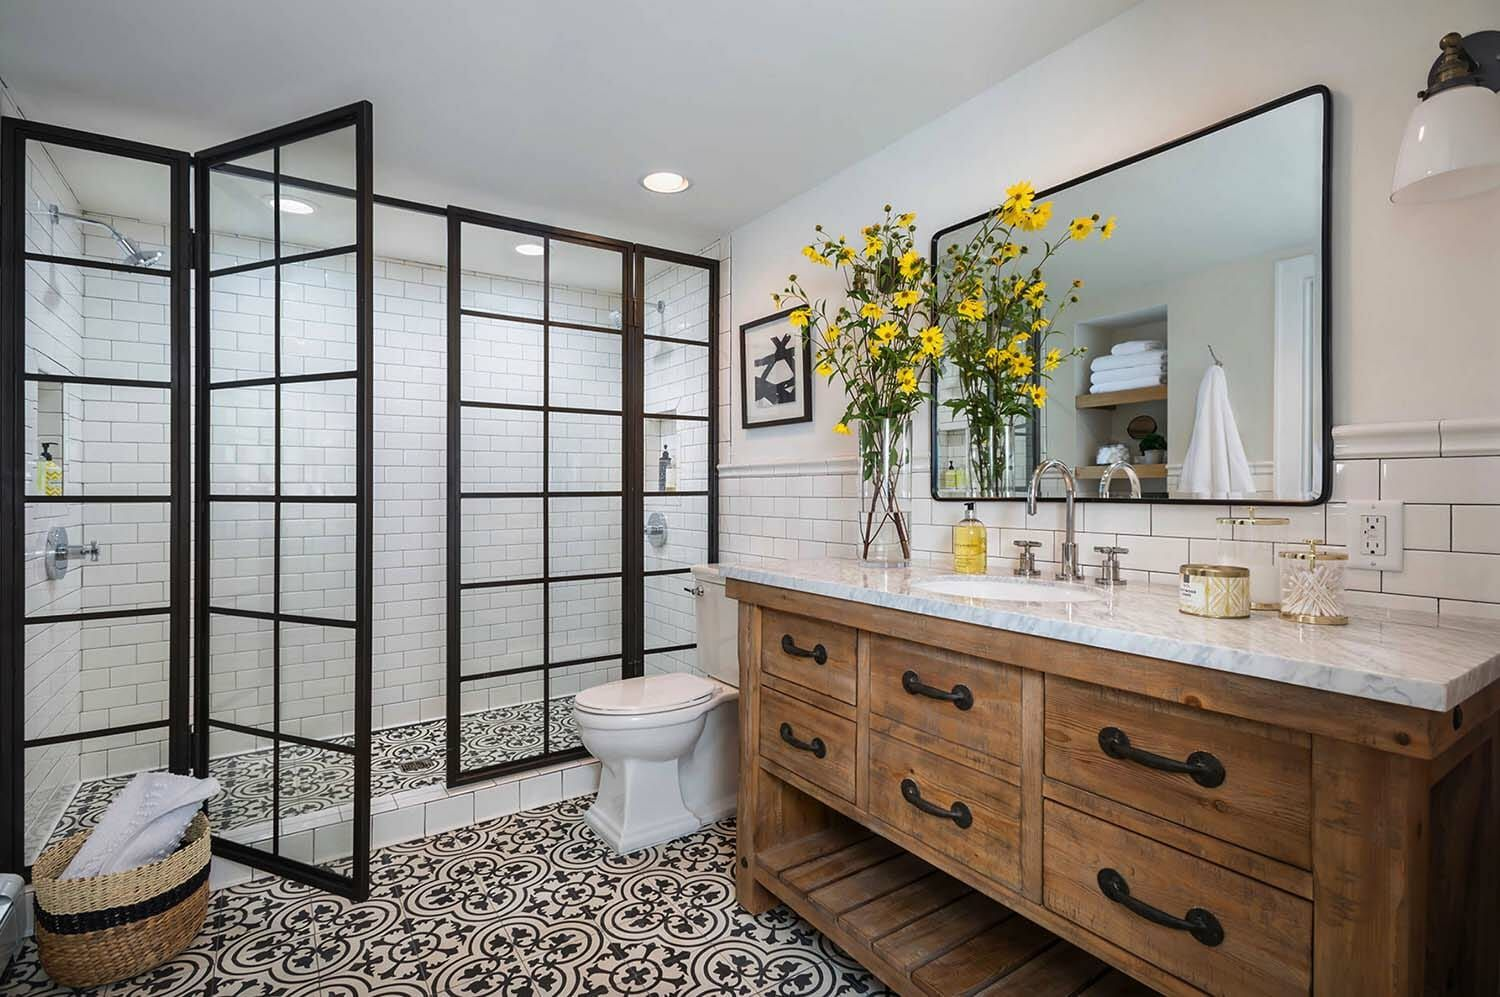 25 incredibly stylish black and white bathroom ideas to inspire rh pinterest com